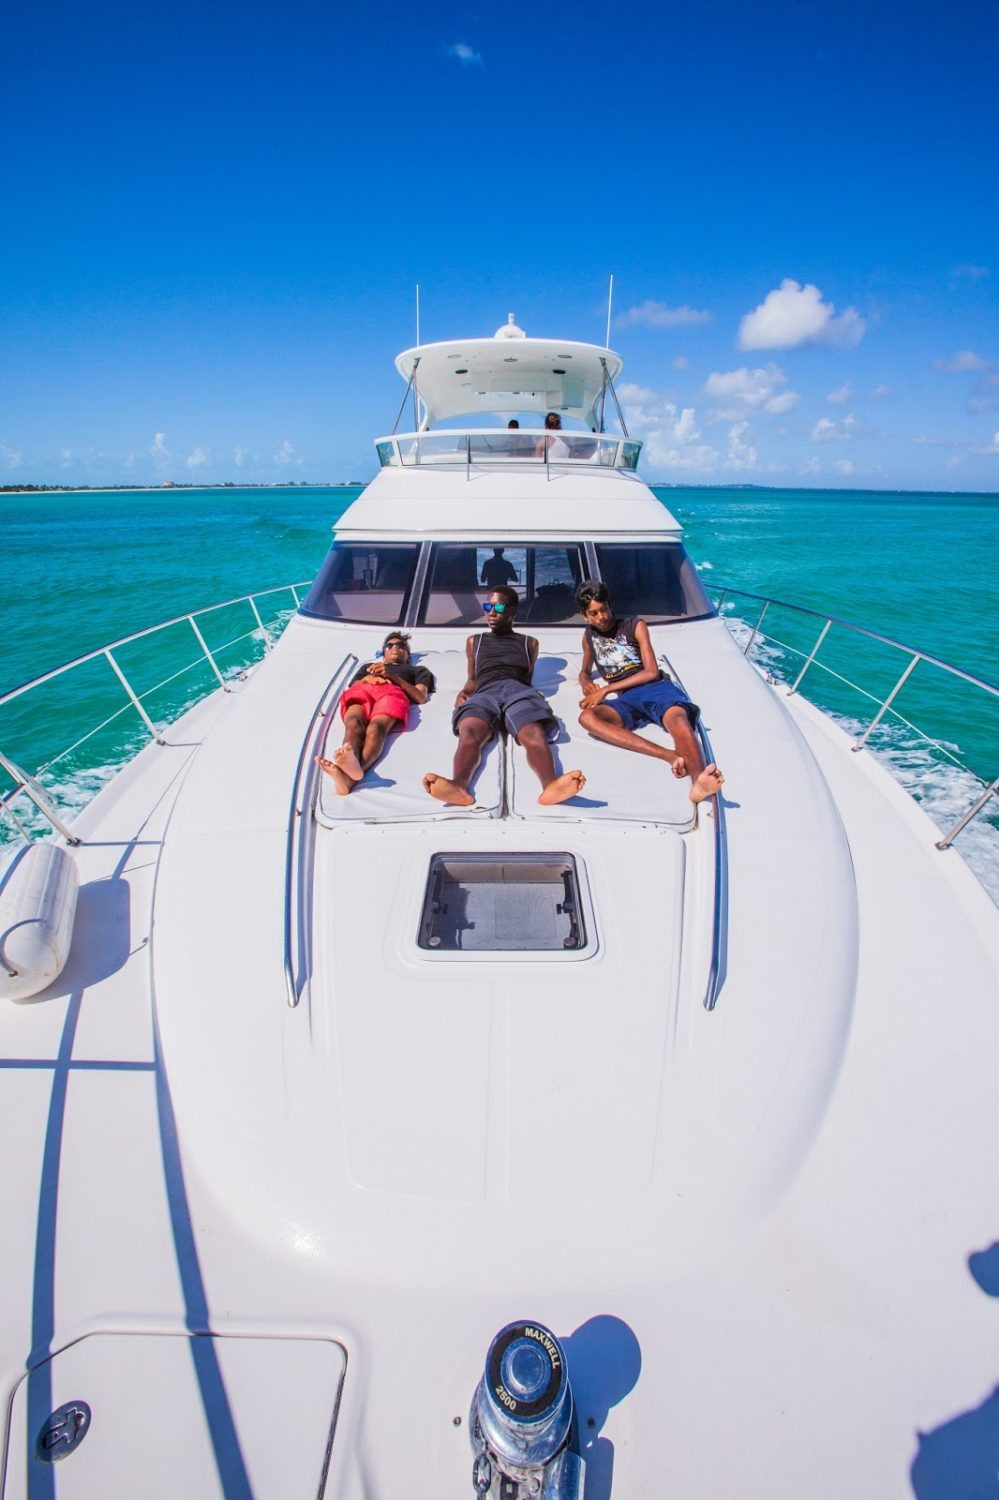 Private cruises in Turks and Caicos